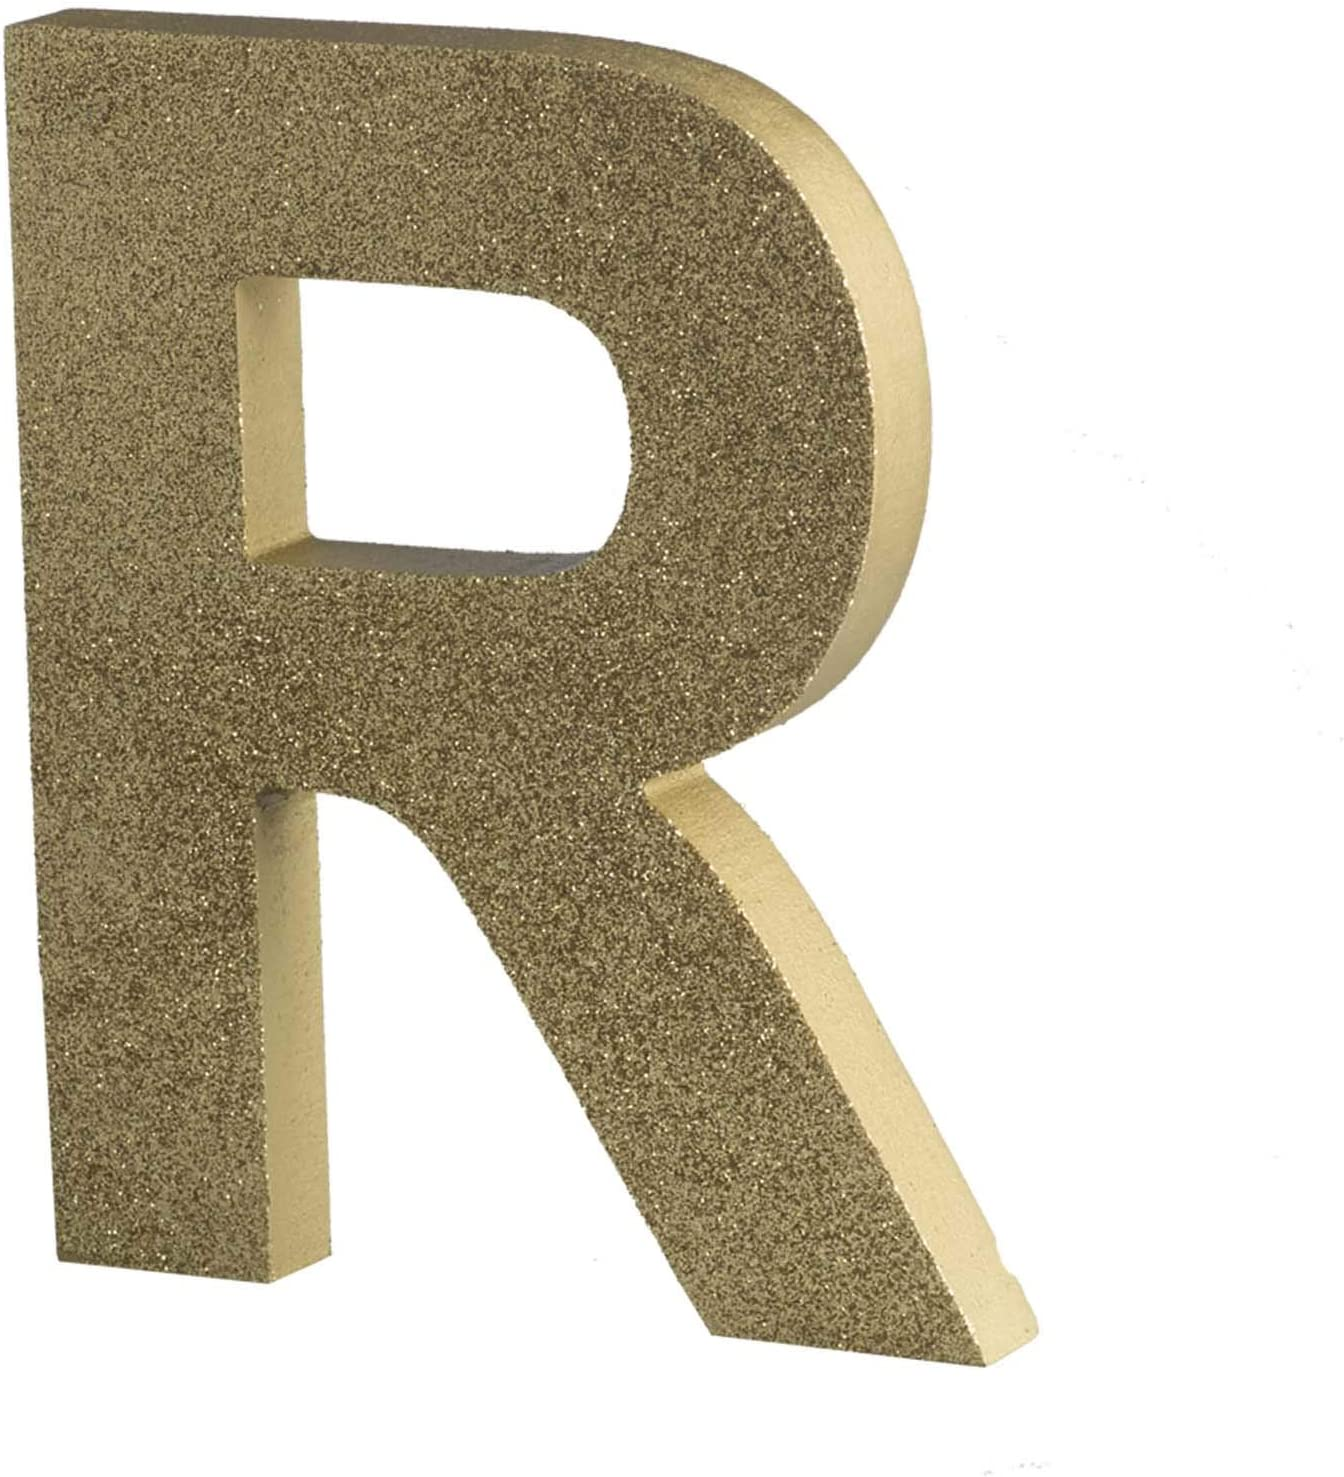 Glitter Gold Wood Letter R Wall Letters Number Marquee Alphabet DIY Block Words Sign Hanging Decor Letter for Home Bedroom Office Wedding Party Decoration